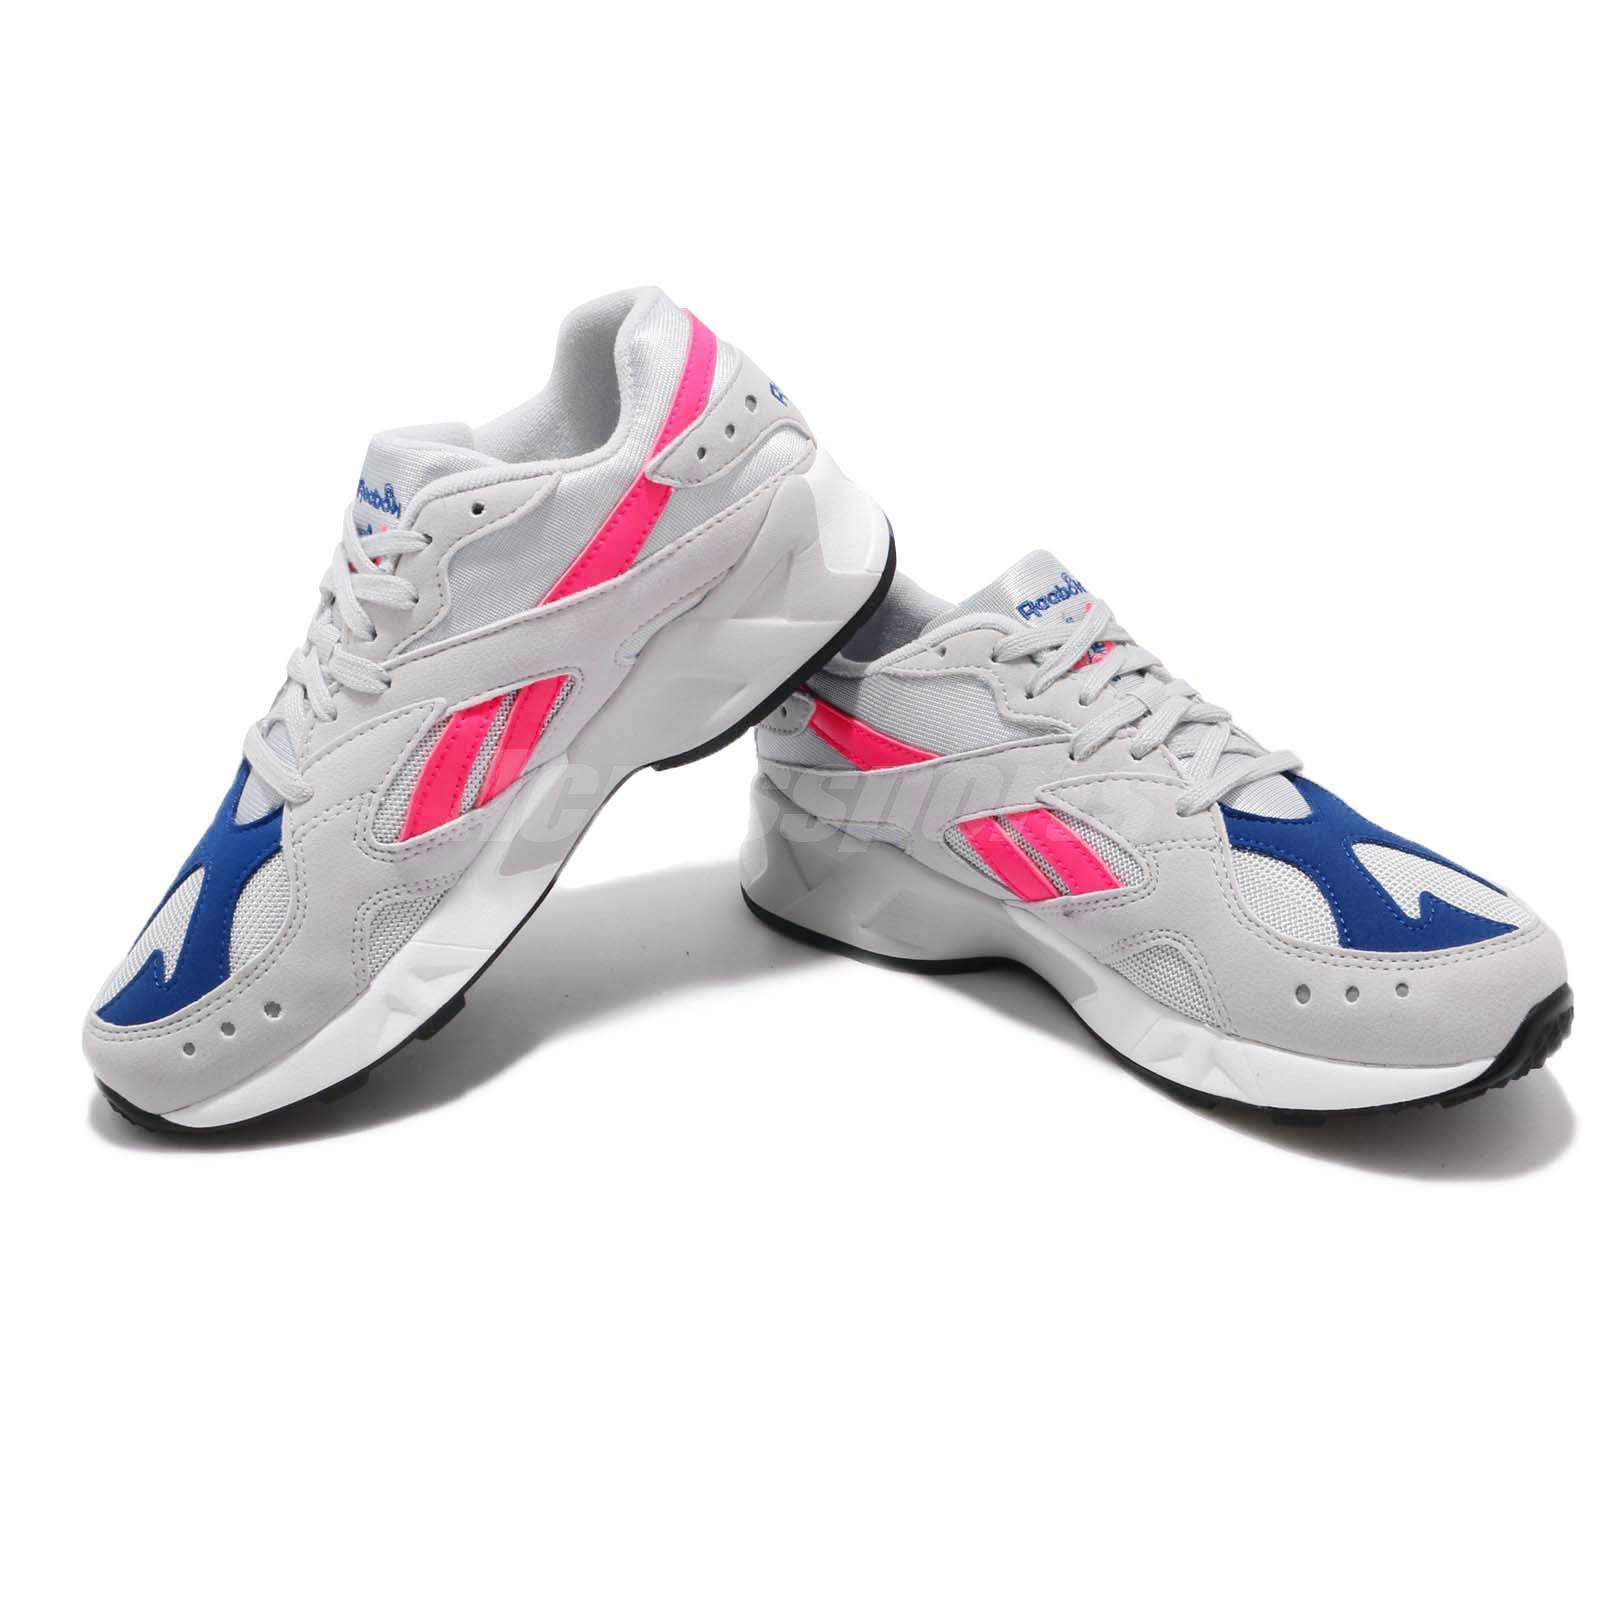 Reebok AZTREK Grey Pink Blue White Men Women Lifestyle Running Daddy ... f0559f8a9